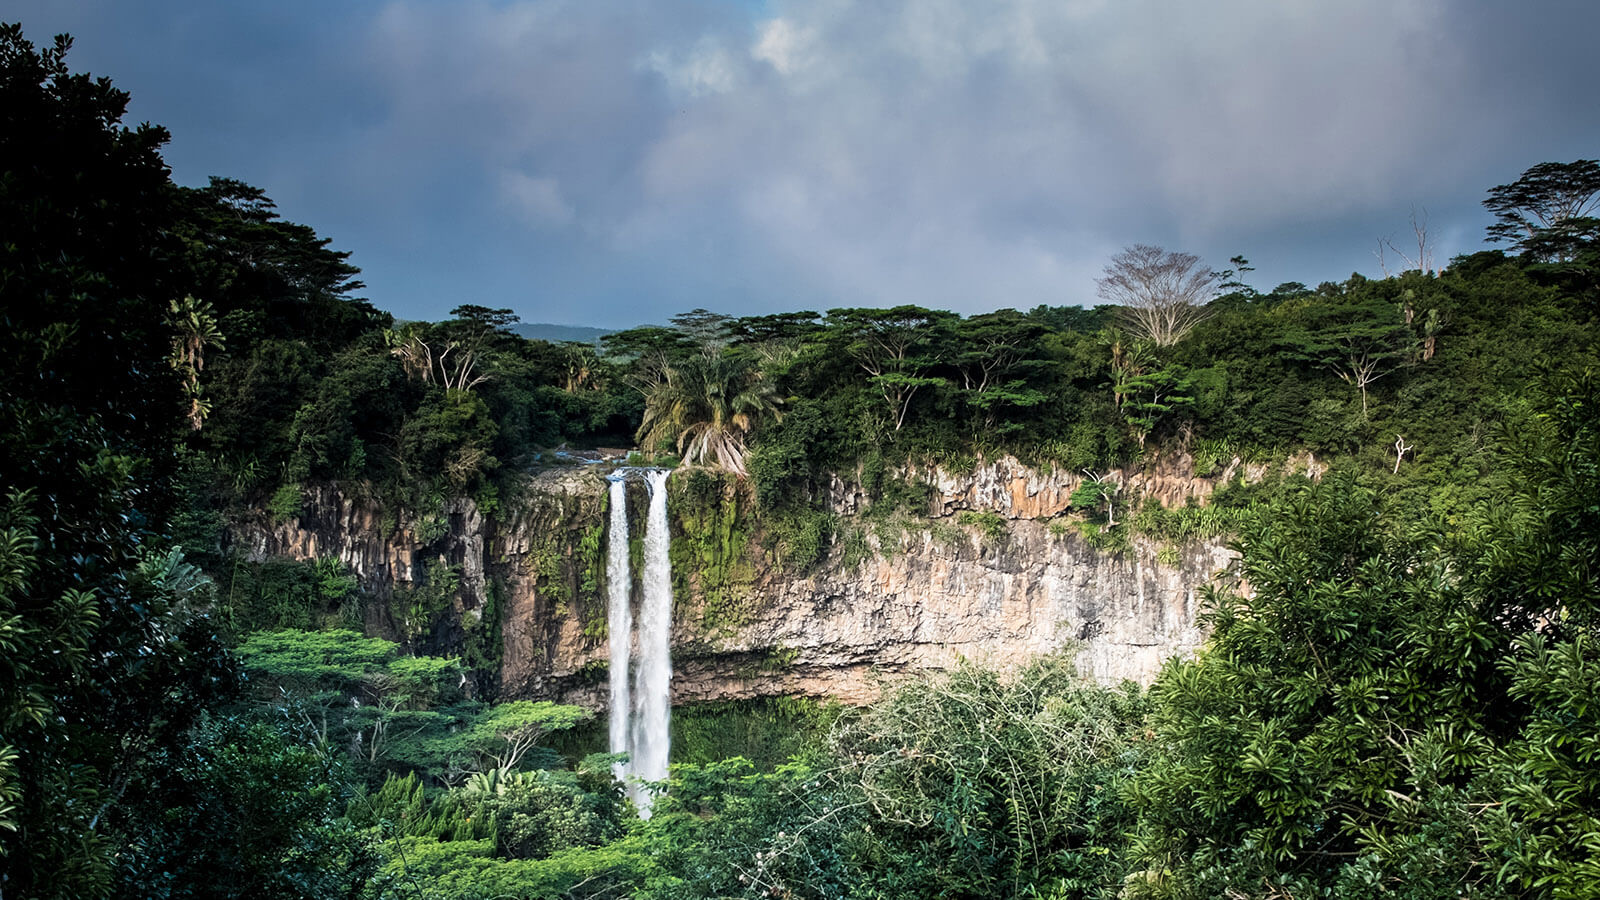 The Chamarel Waterfall in Mauritius is a beautiful and popular tourist destination